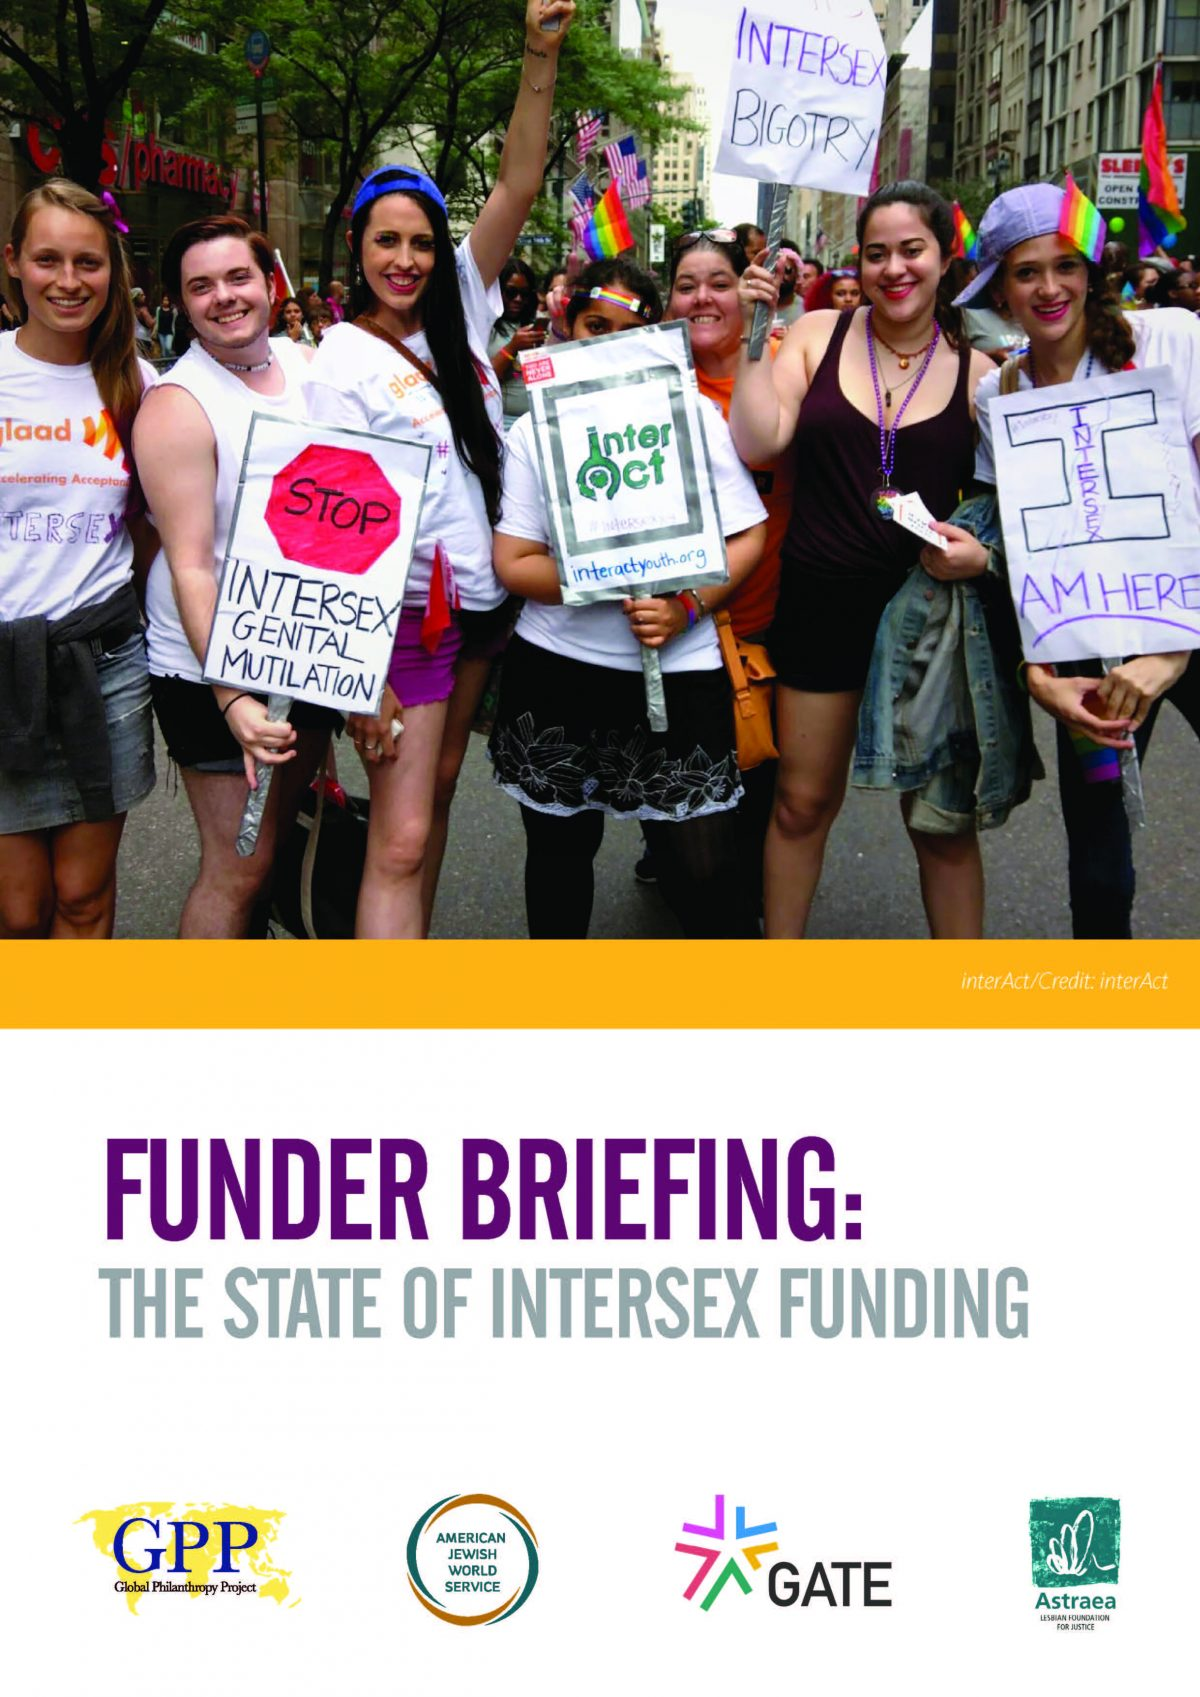 Funder Briefing: The State of Intersex Funding